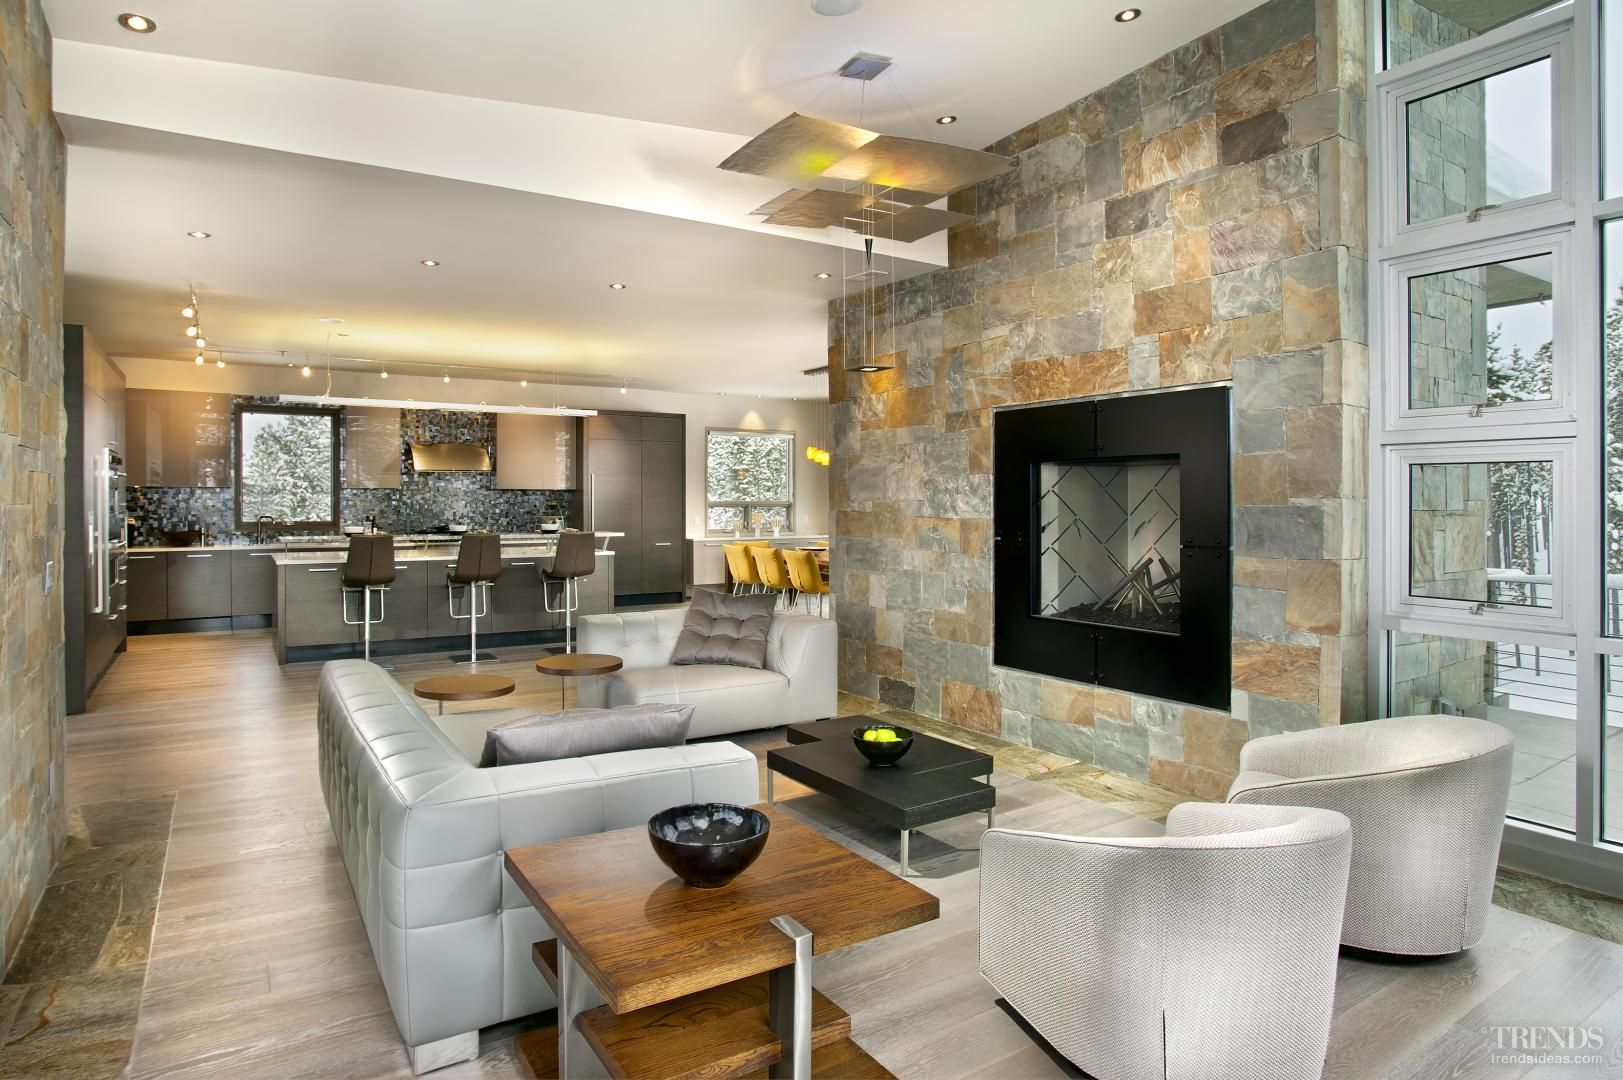 Balanced menu - kitchen with beautiful outlook by New Mood Design ...